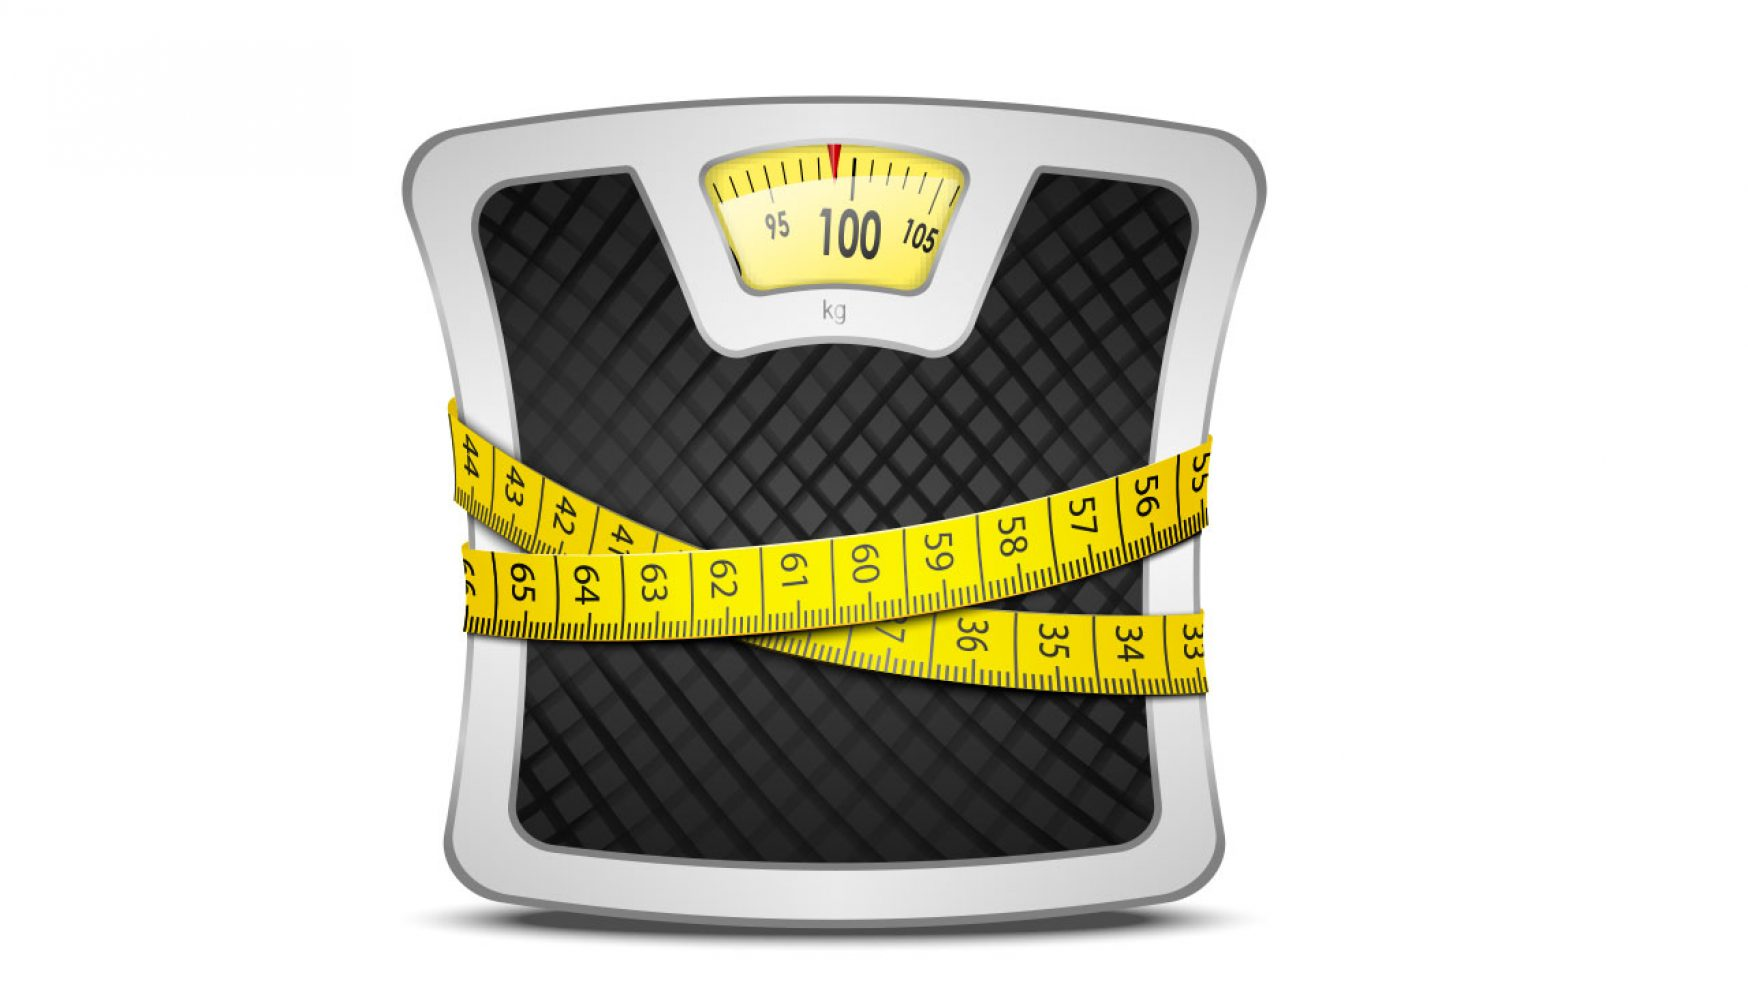 How do I know my BMI?